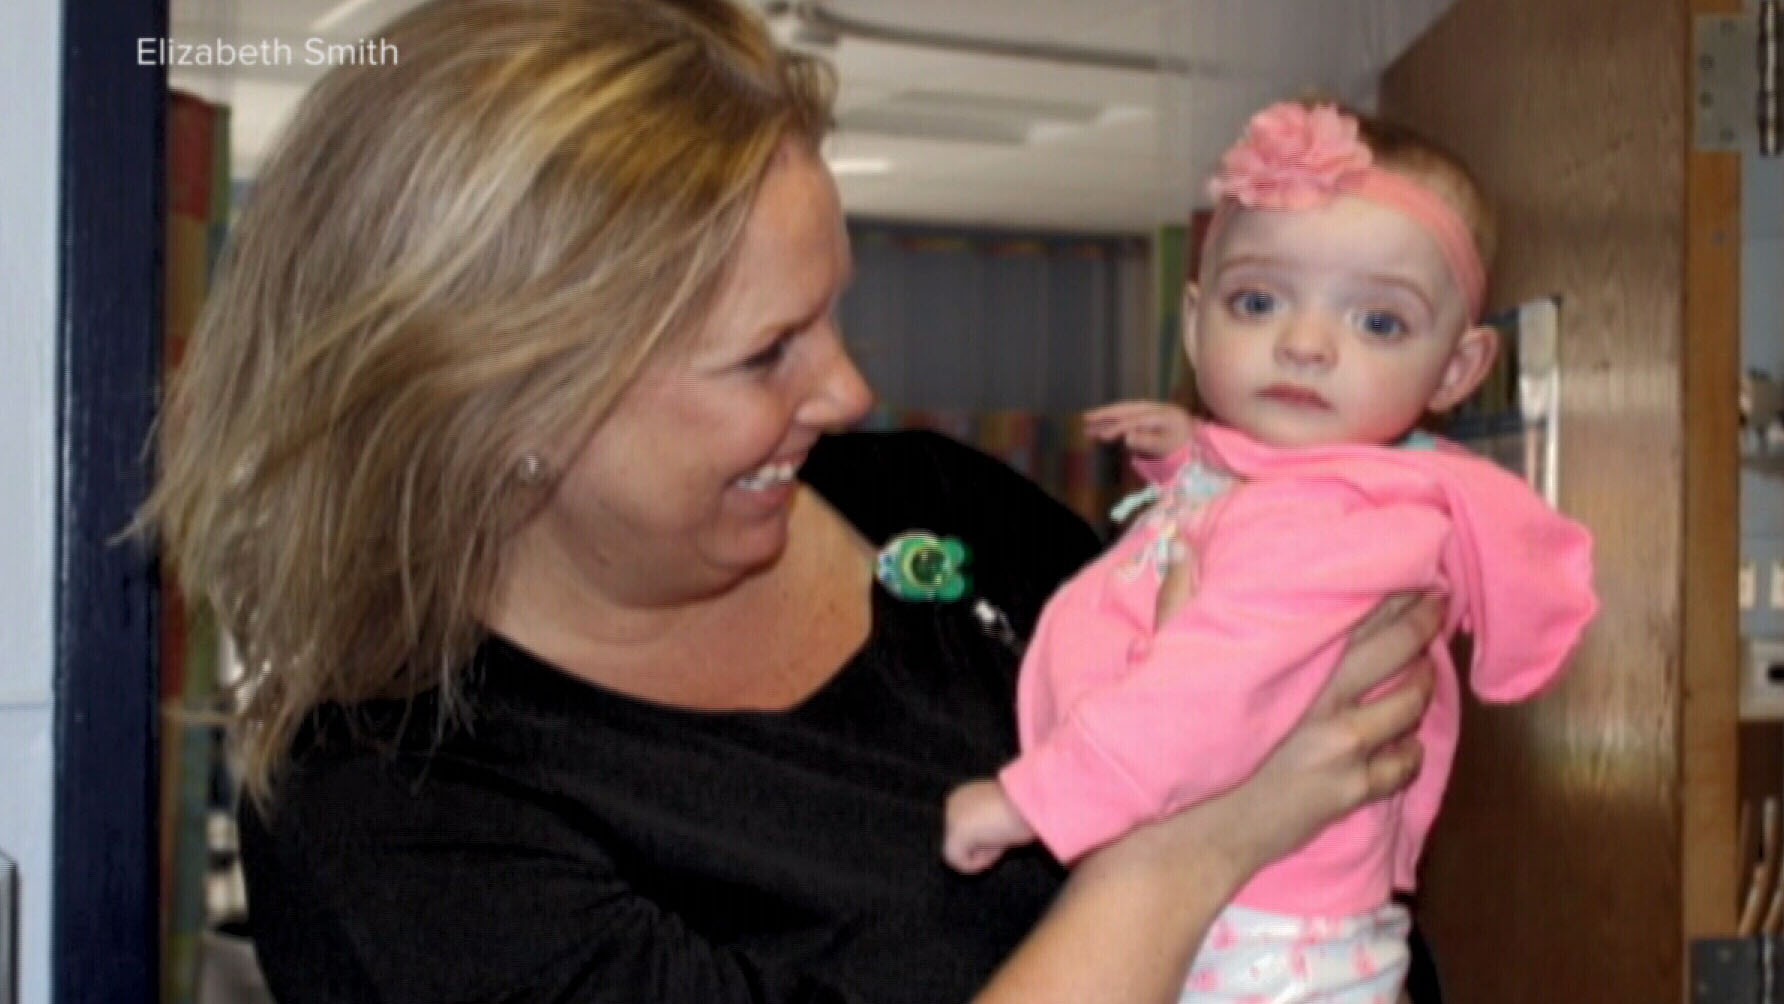 Changed my life': Nurse adopts baby who had no visitors for five